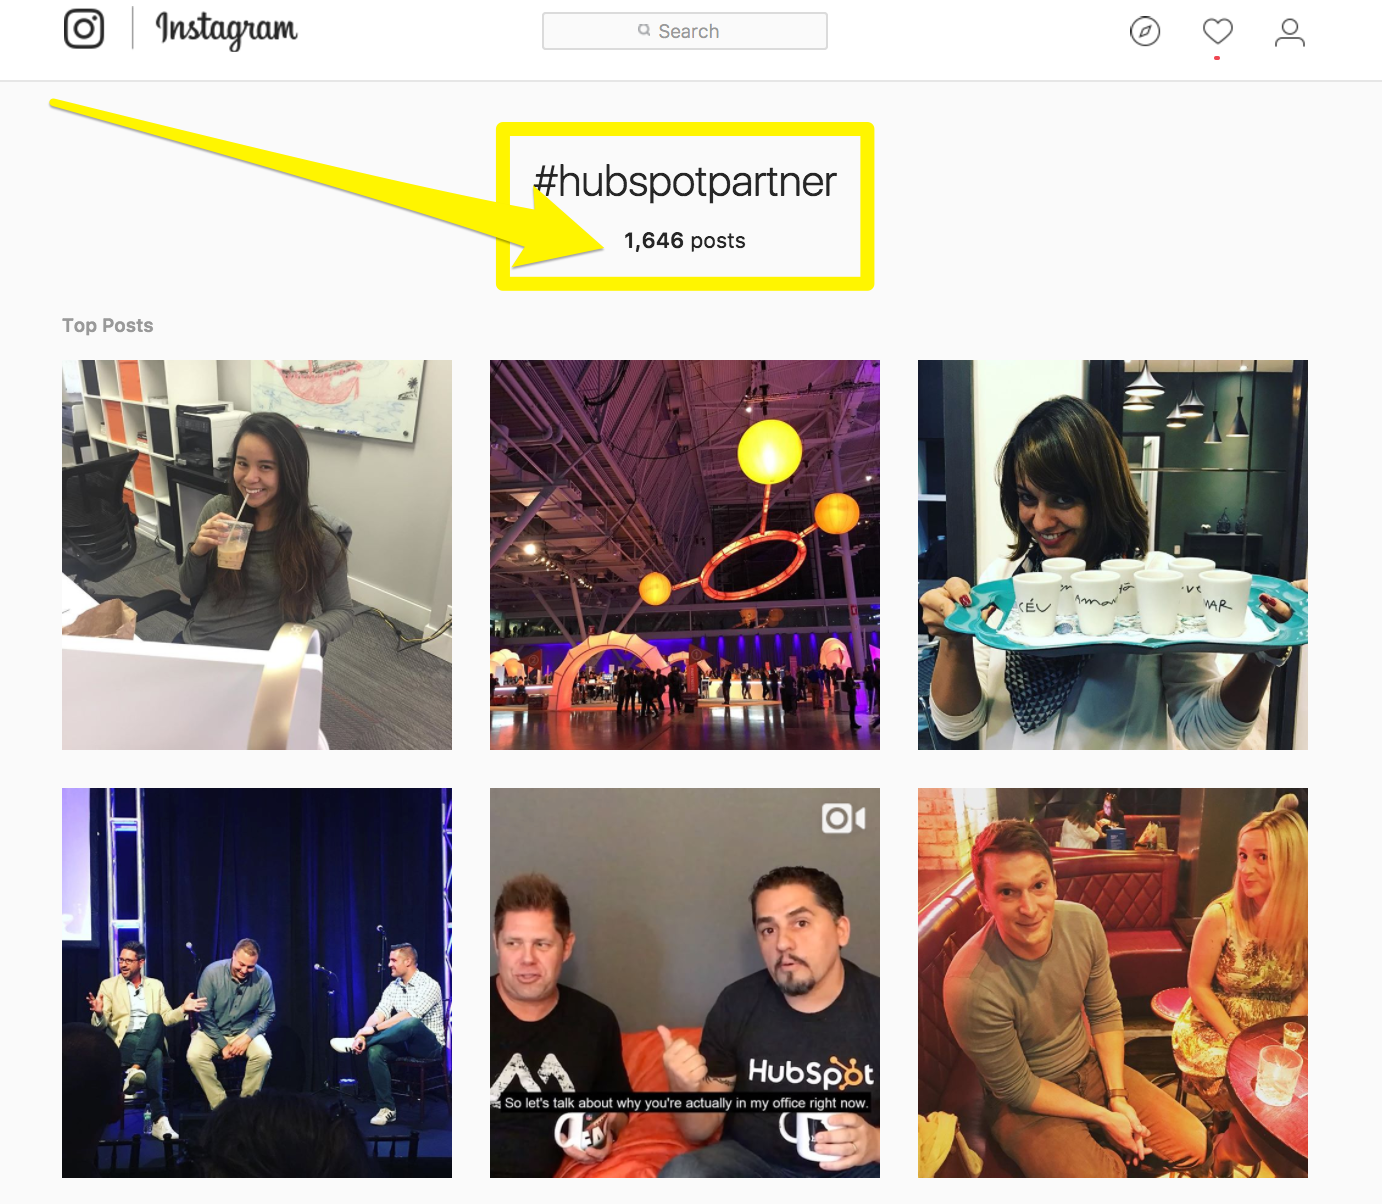 Screenshot showing instagram results for #hubspotpartner